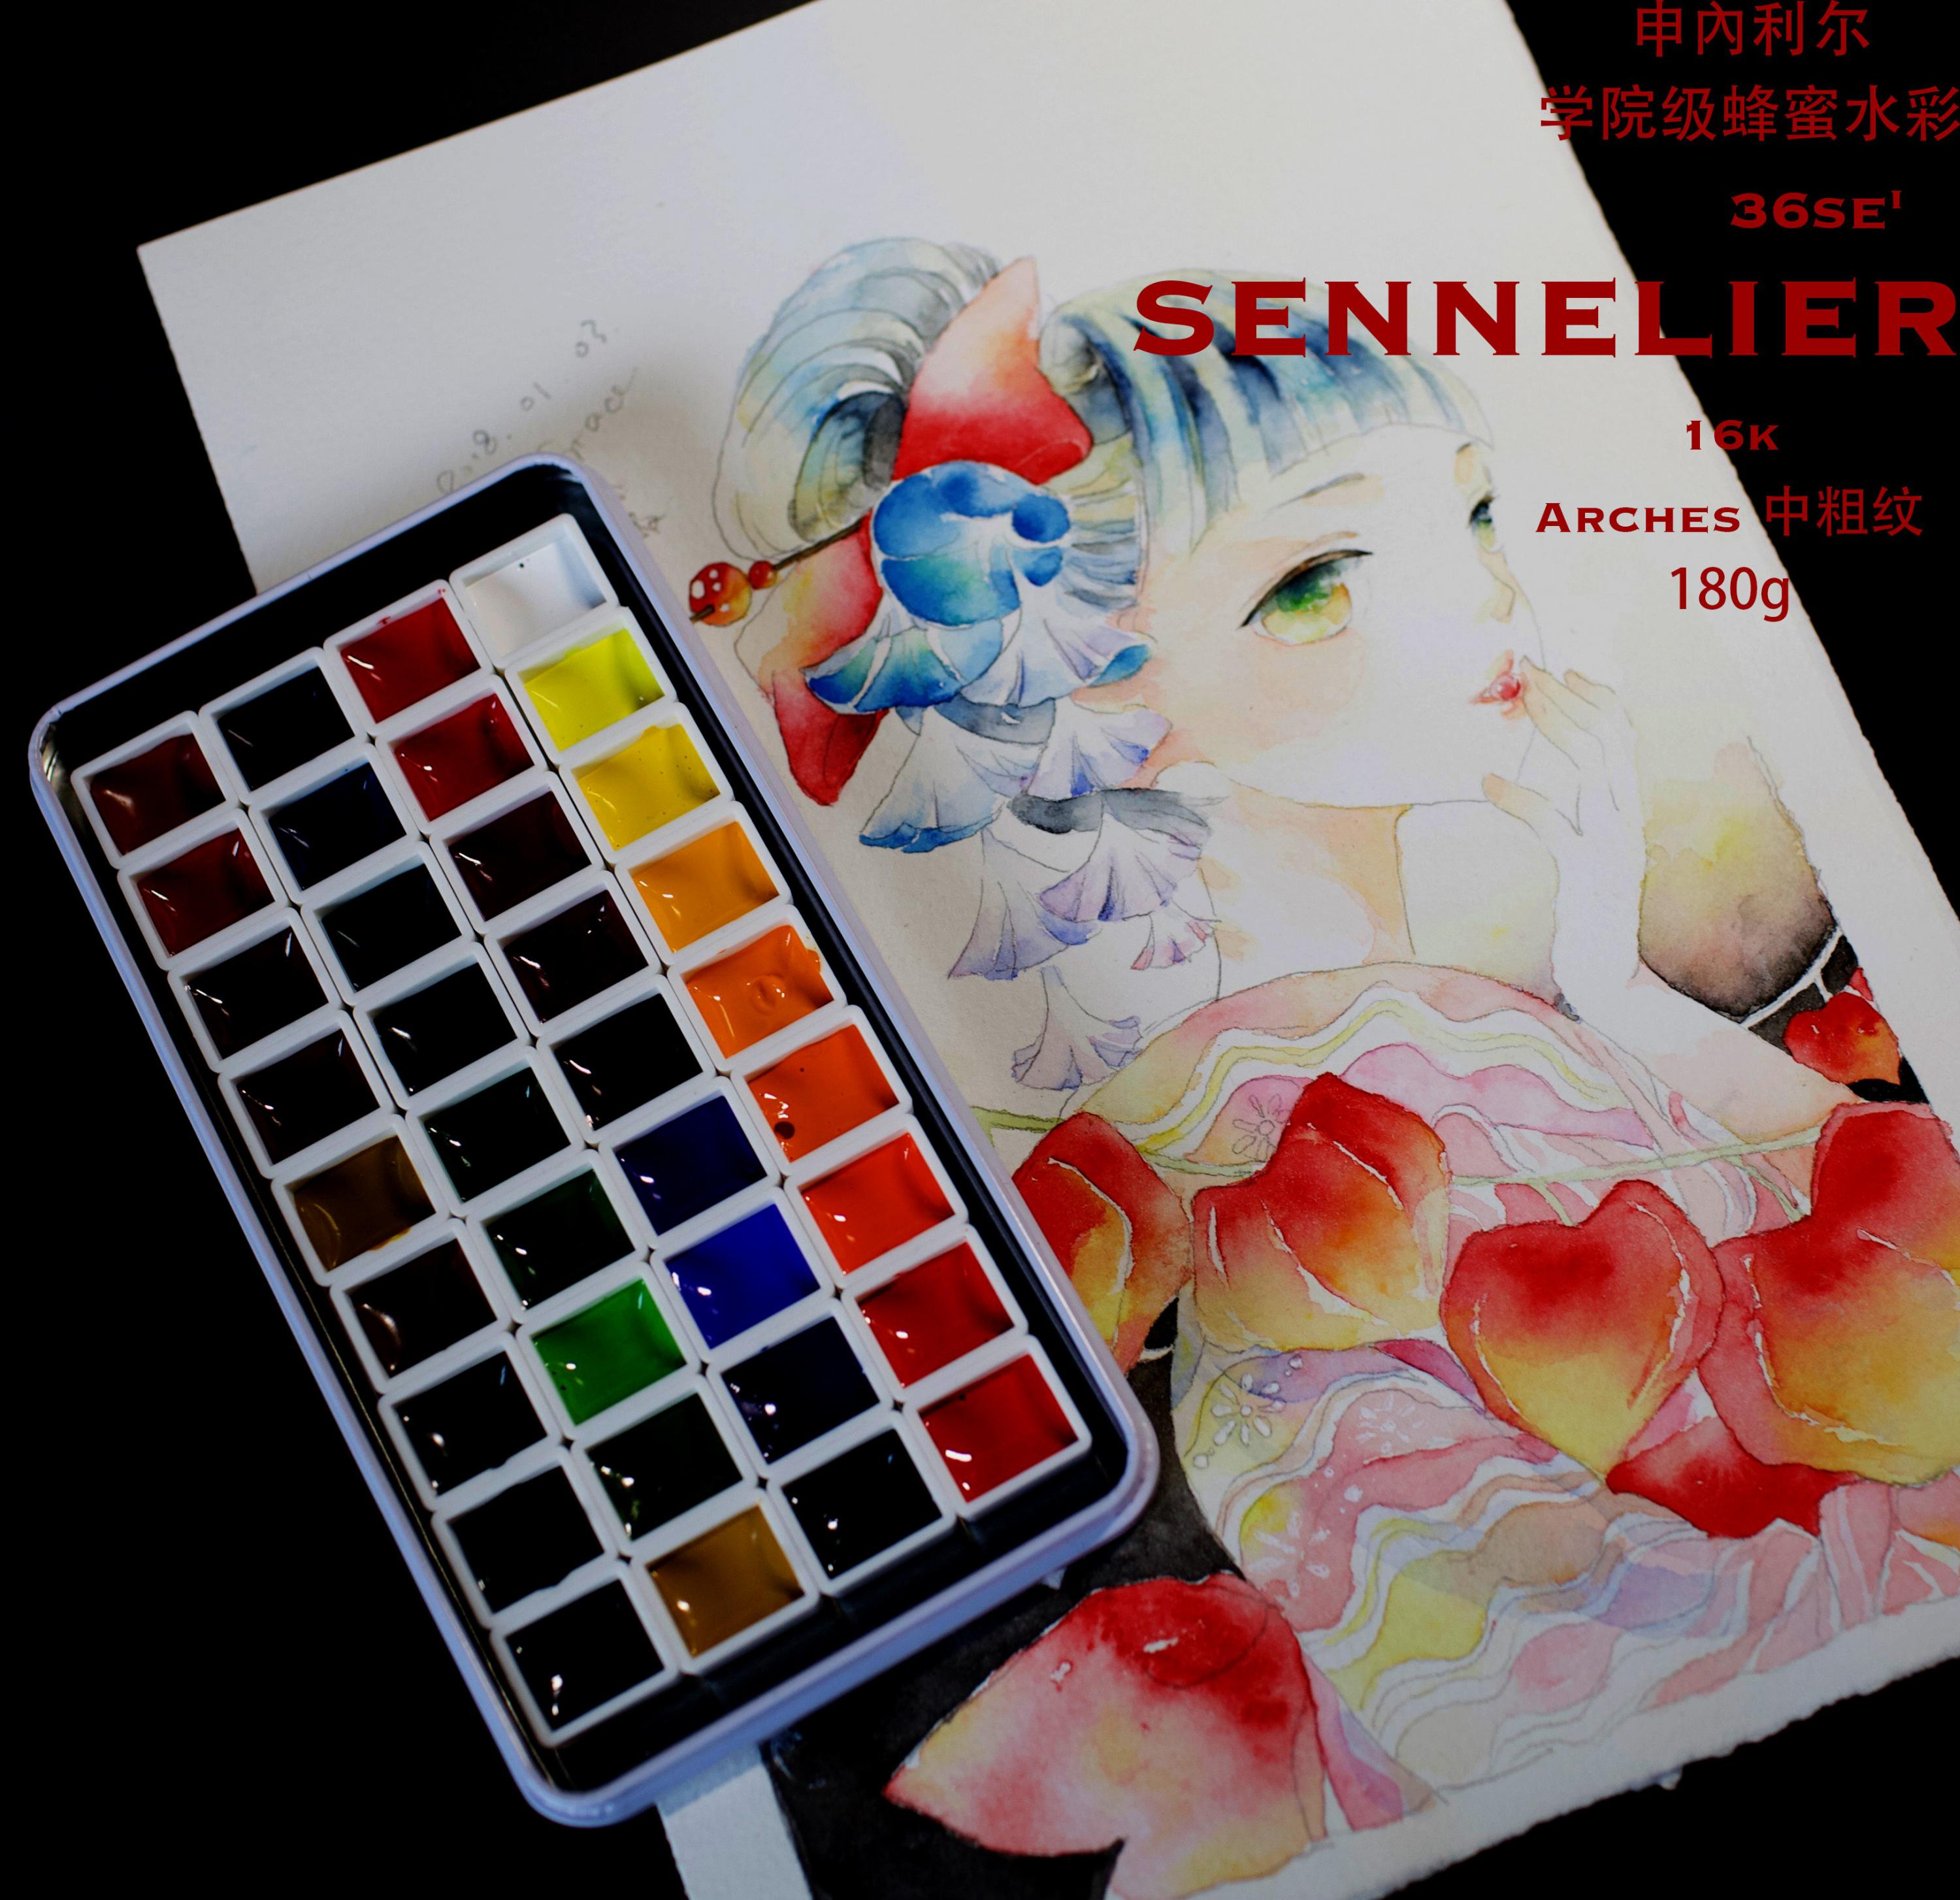 France Sennelier Student Class Watercolor Pigment Academy 36 Colors Dispensing Sub Package Solid Watercolor Aquarela